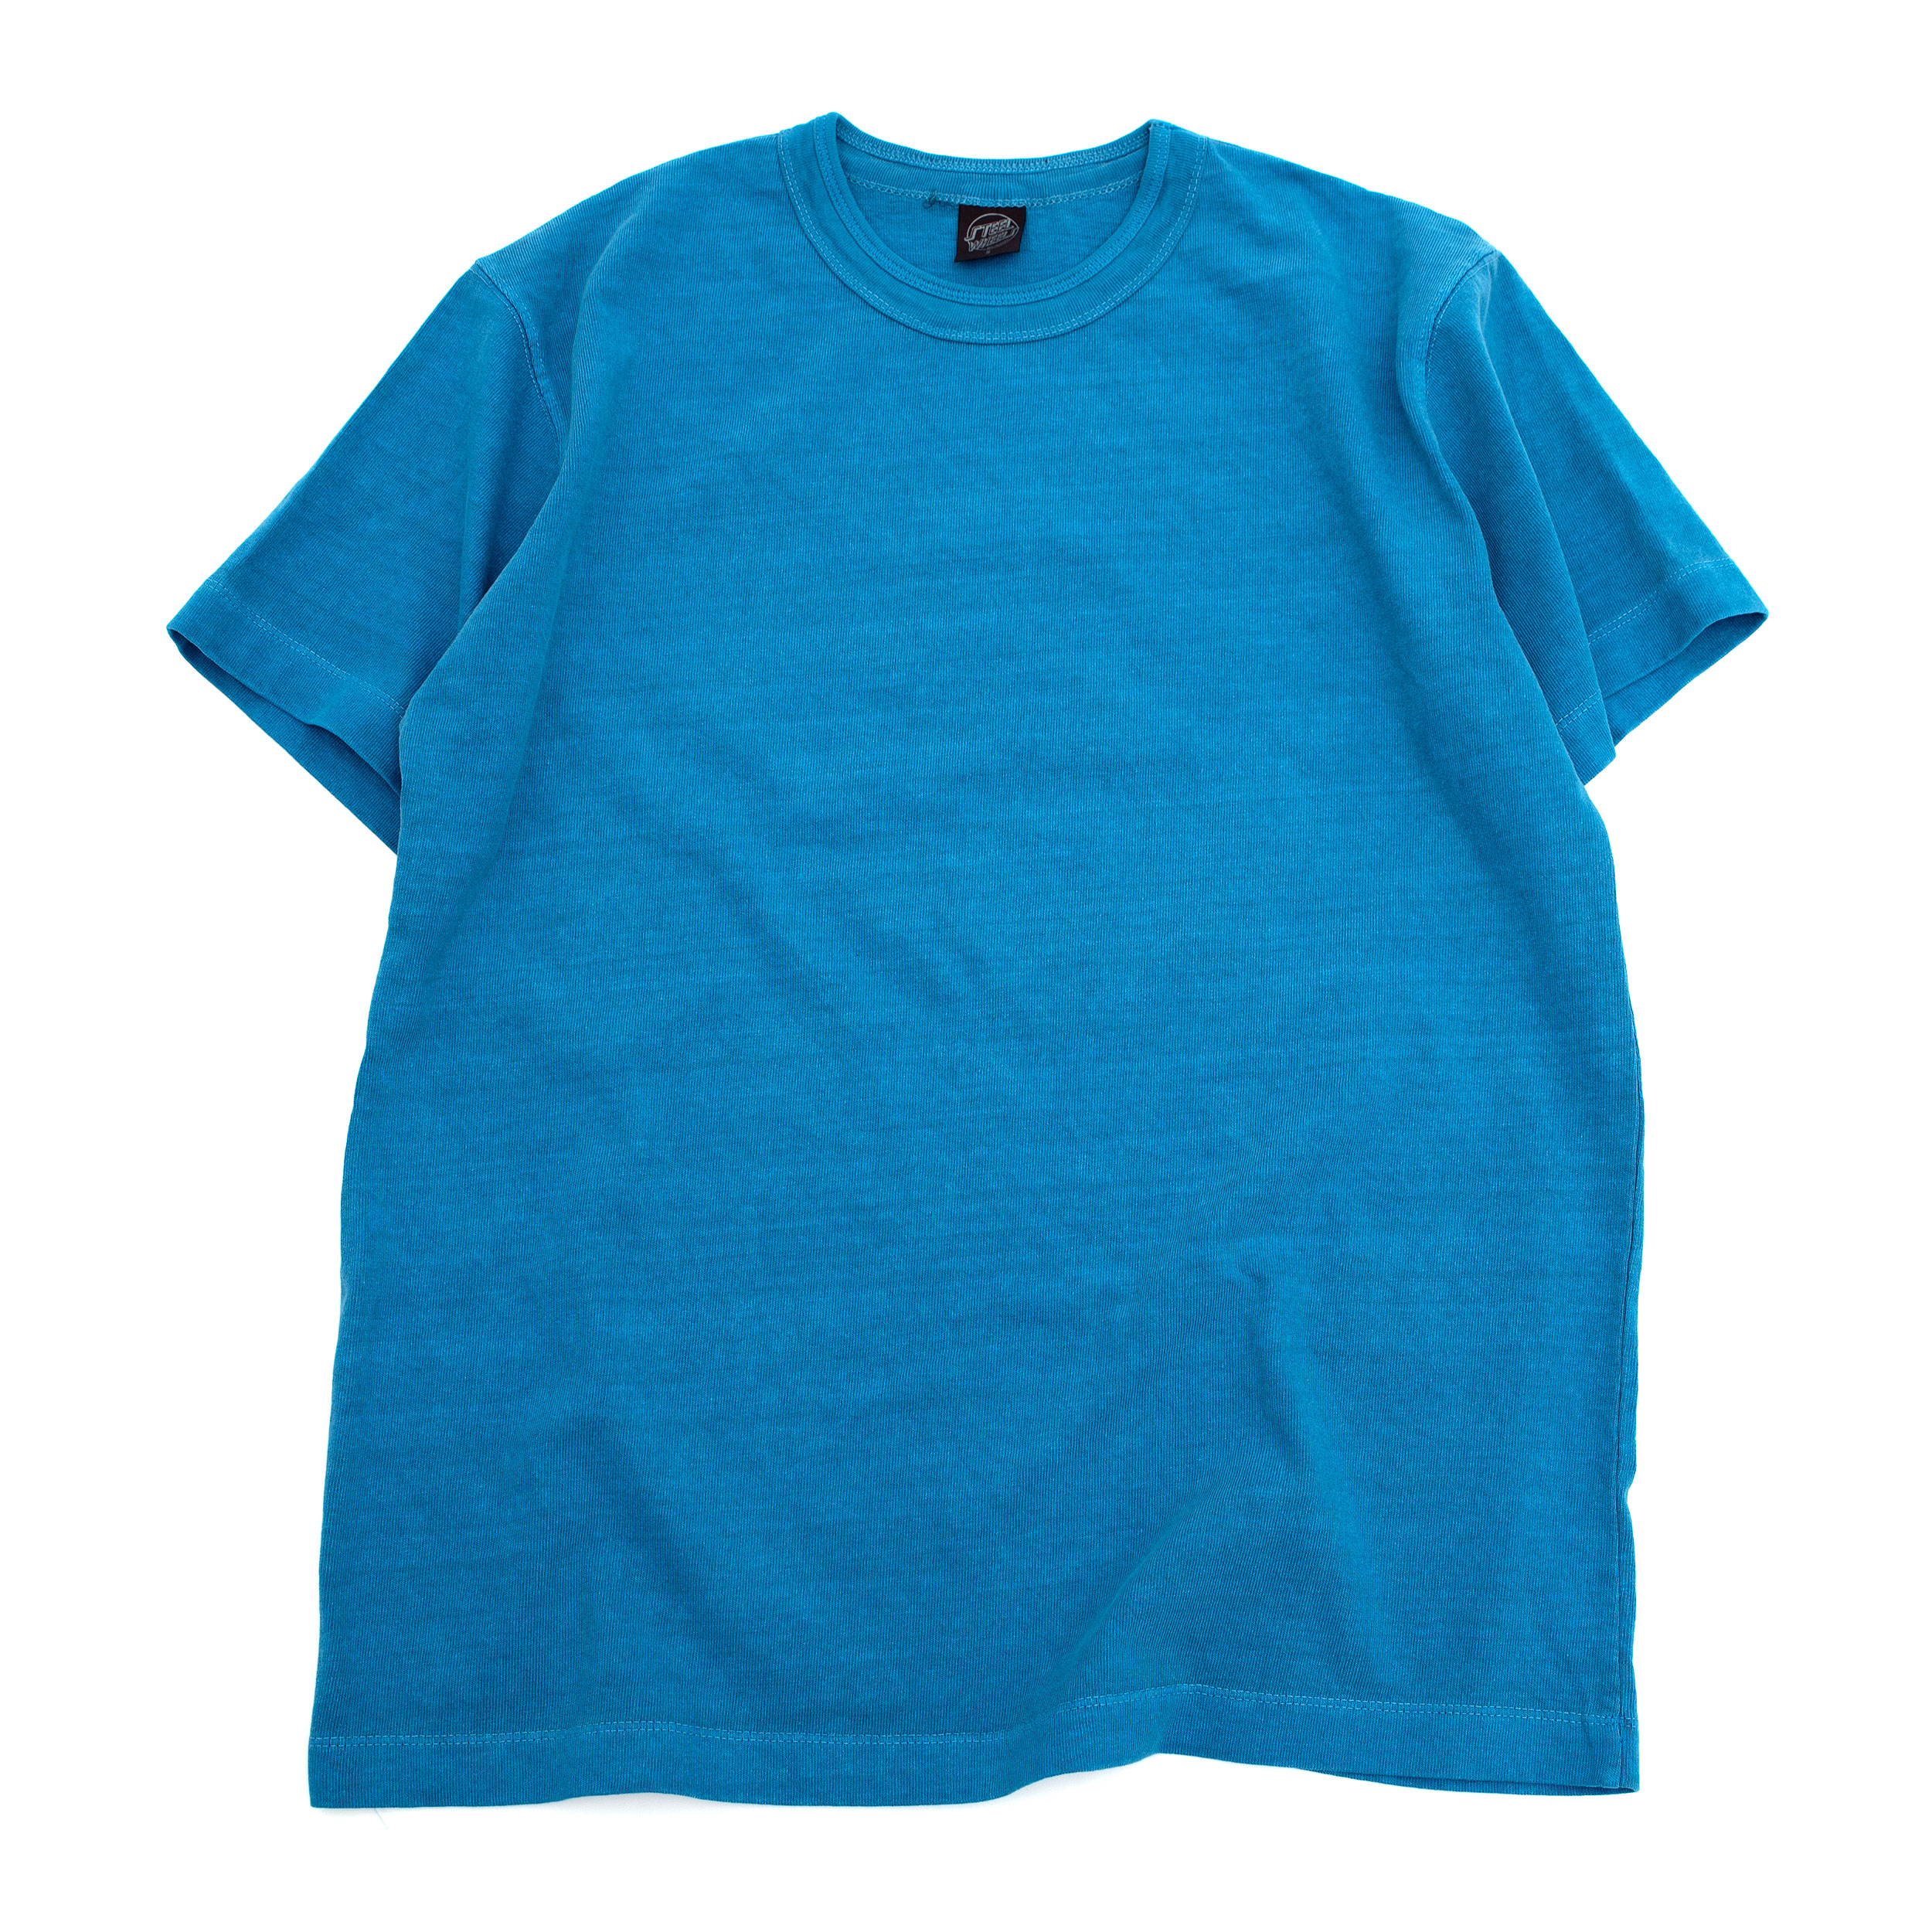 SUMMER DYED BASIC T SHIRT (BLUE)